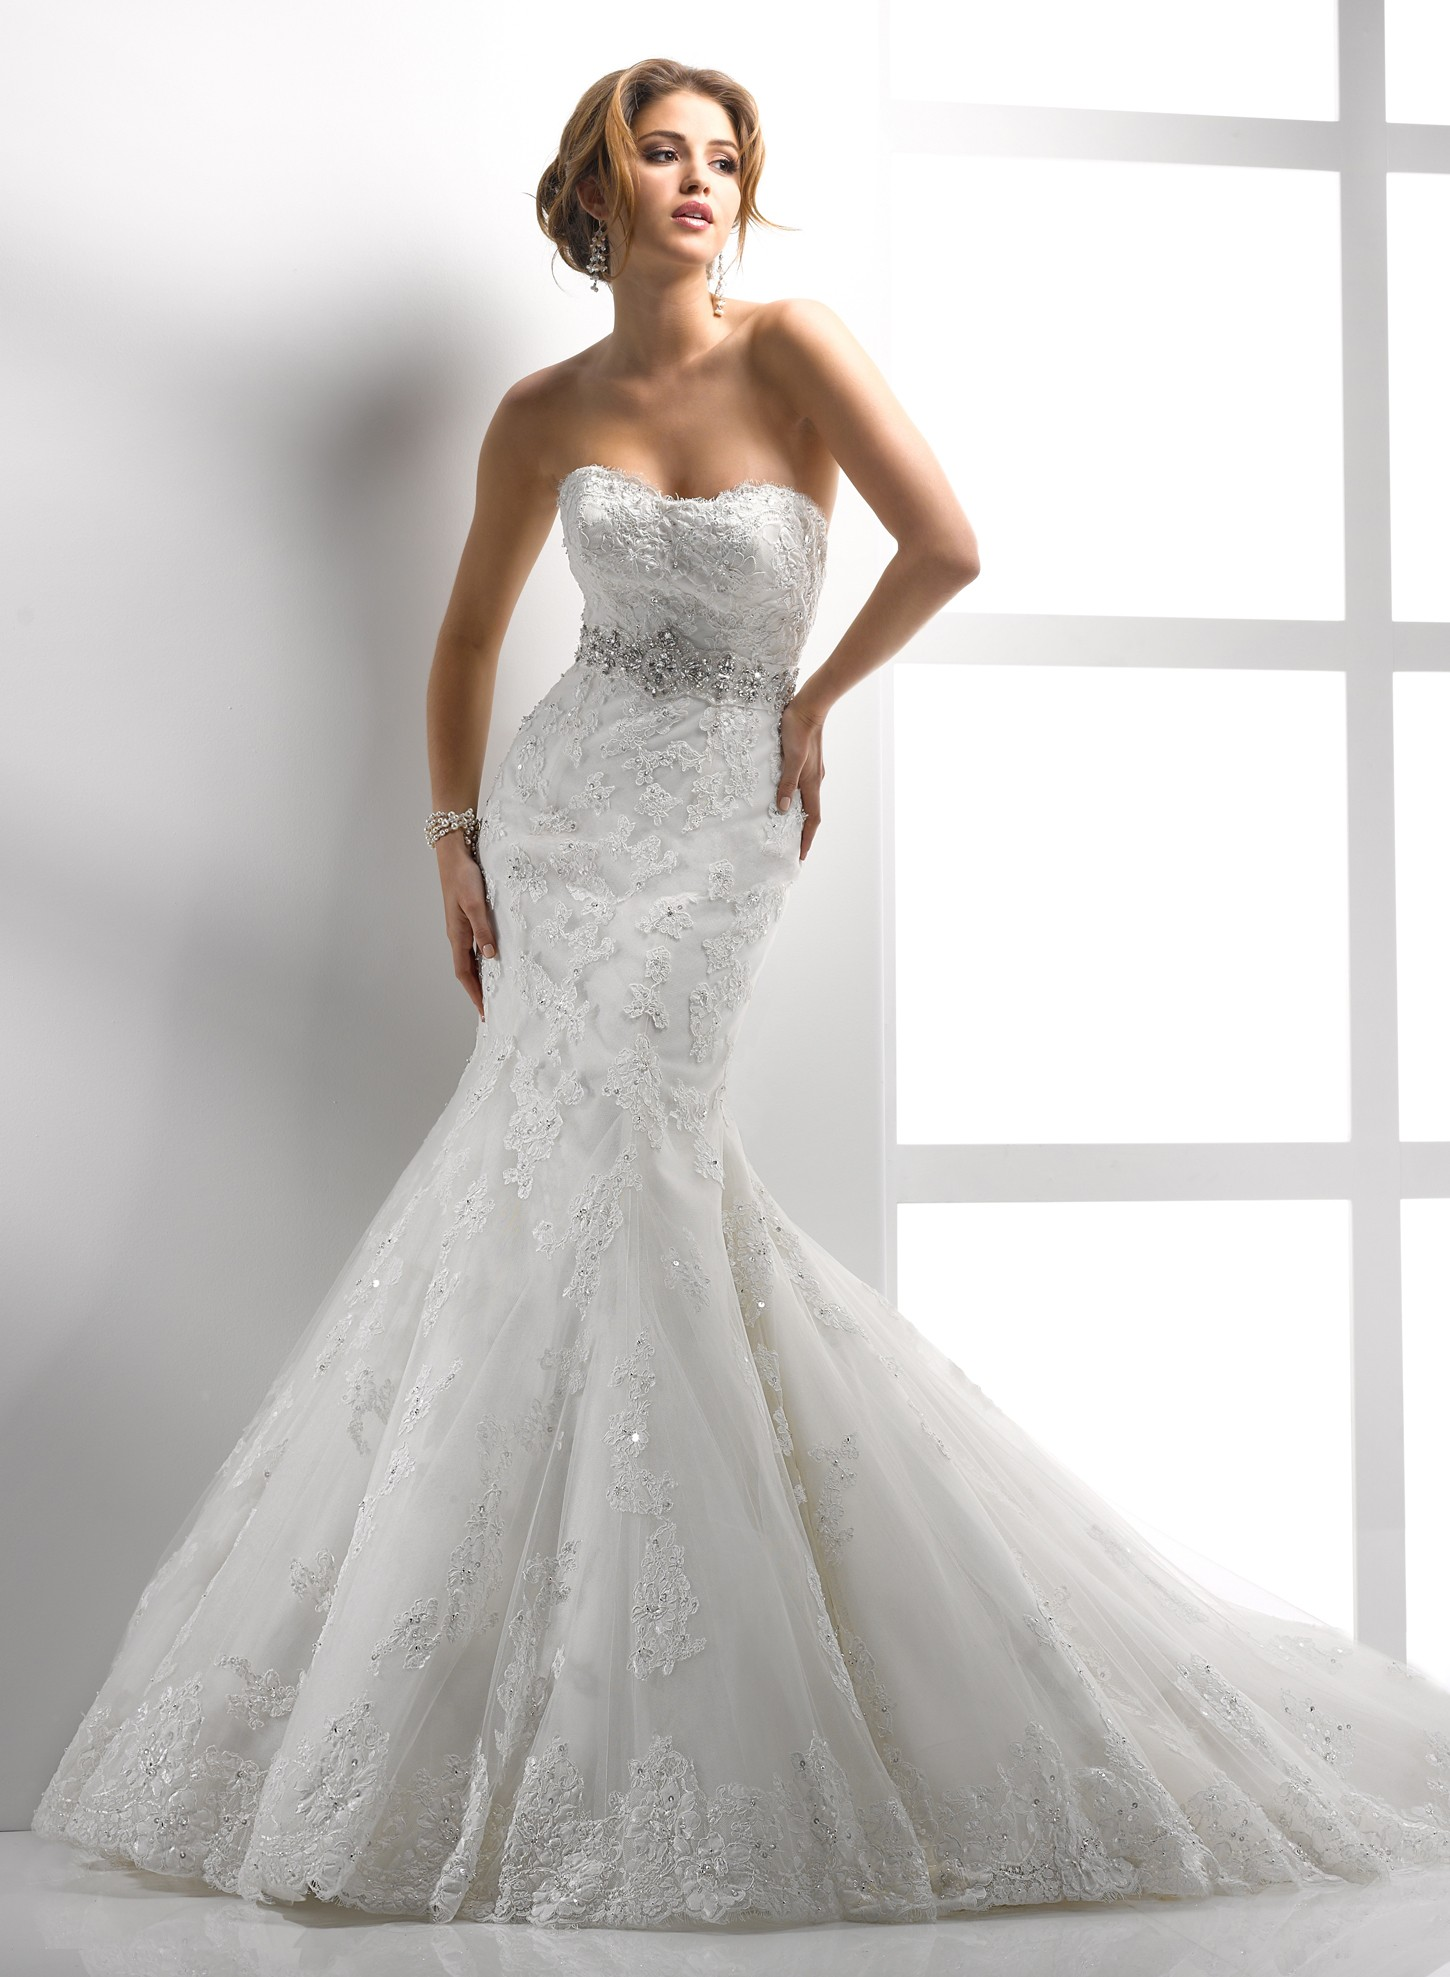 Wedding Wedding Dresses Mermaid elegant mermaid wedding dresses fashion urge dresses